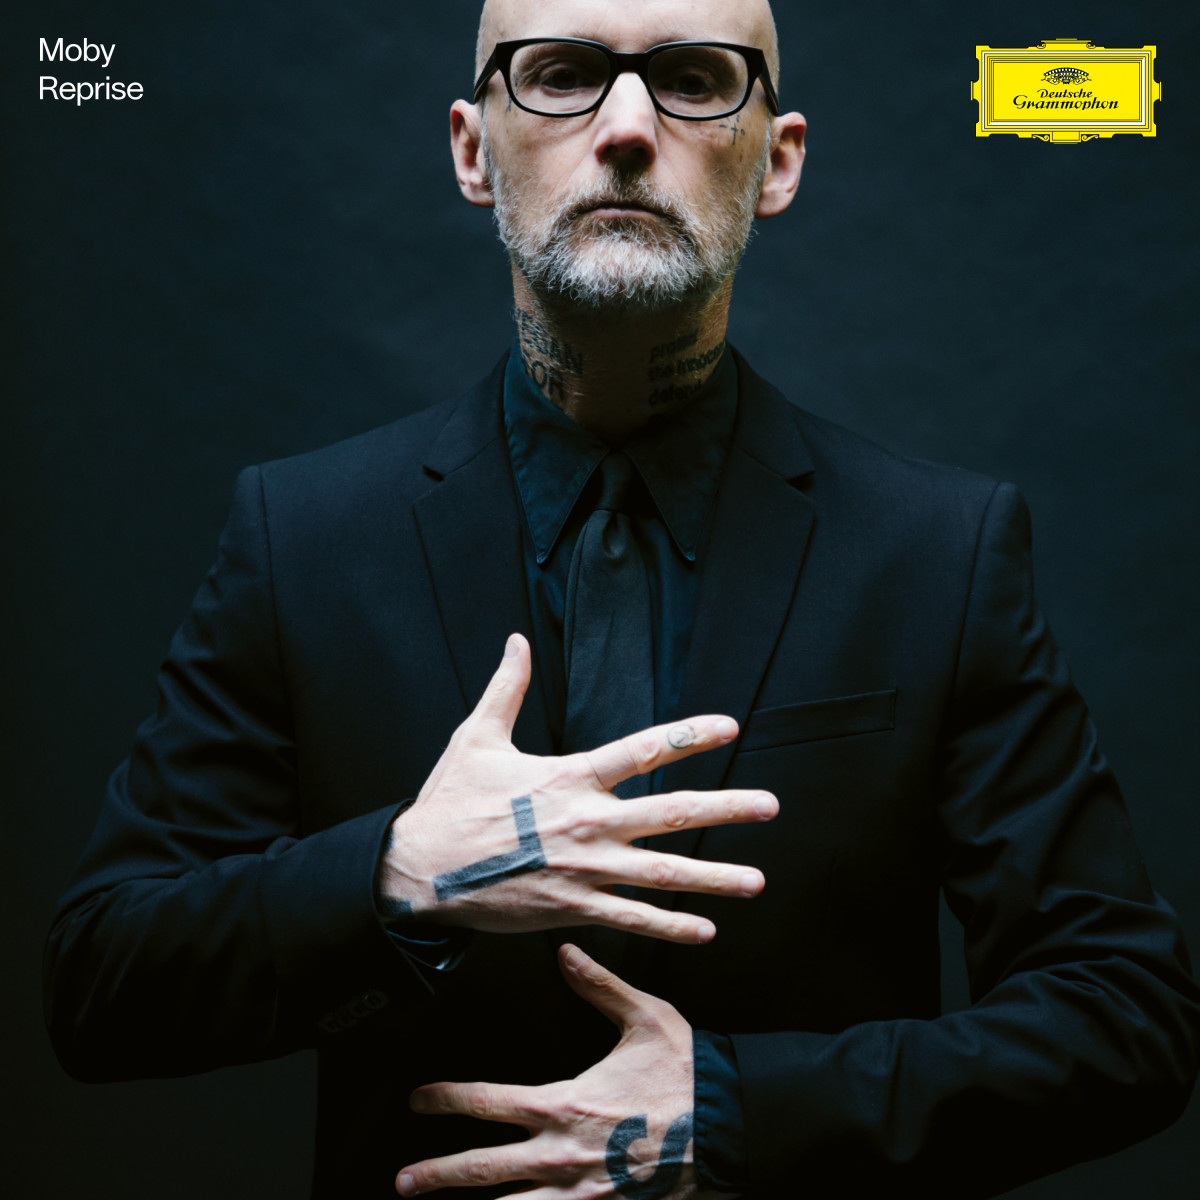 moby reprise cover art